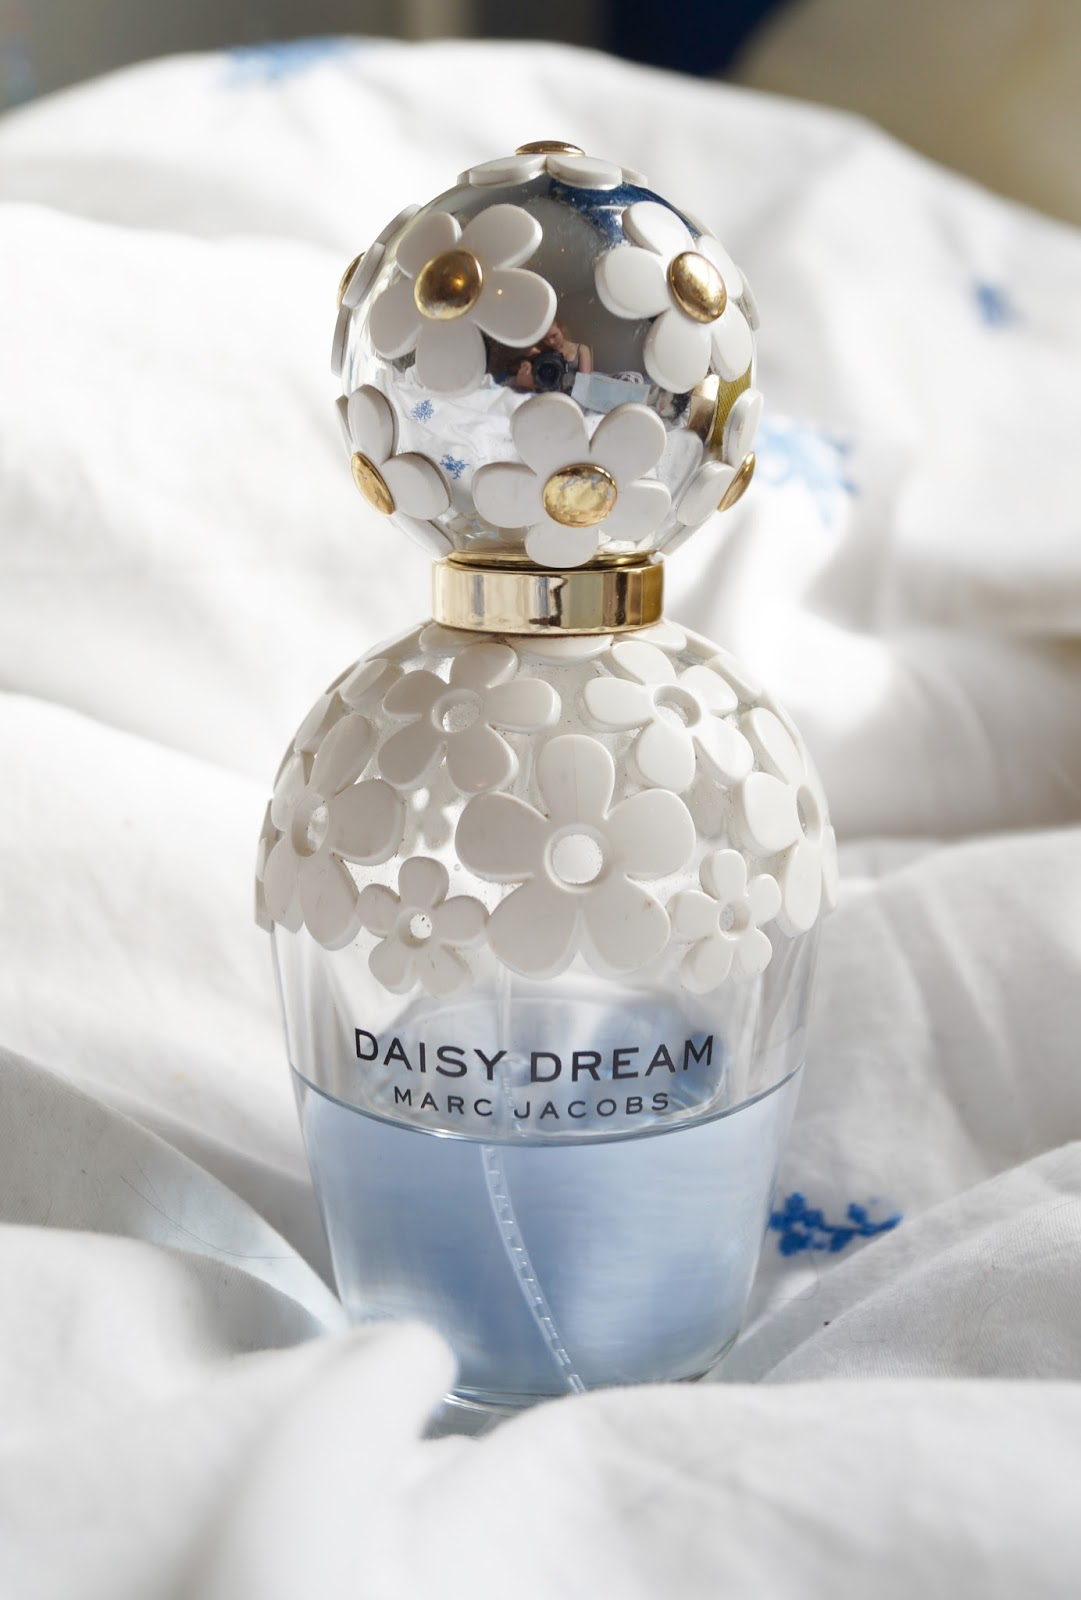 marc jacobs daisy dreams spring perfume